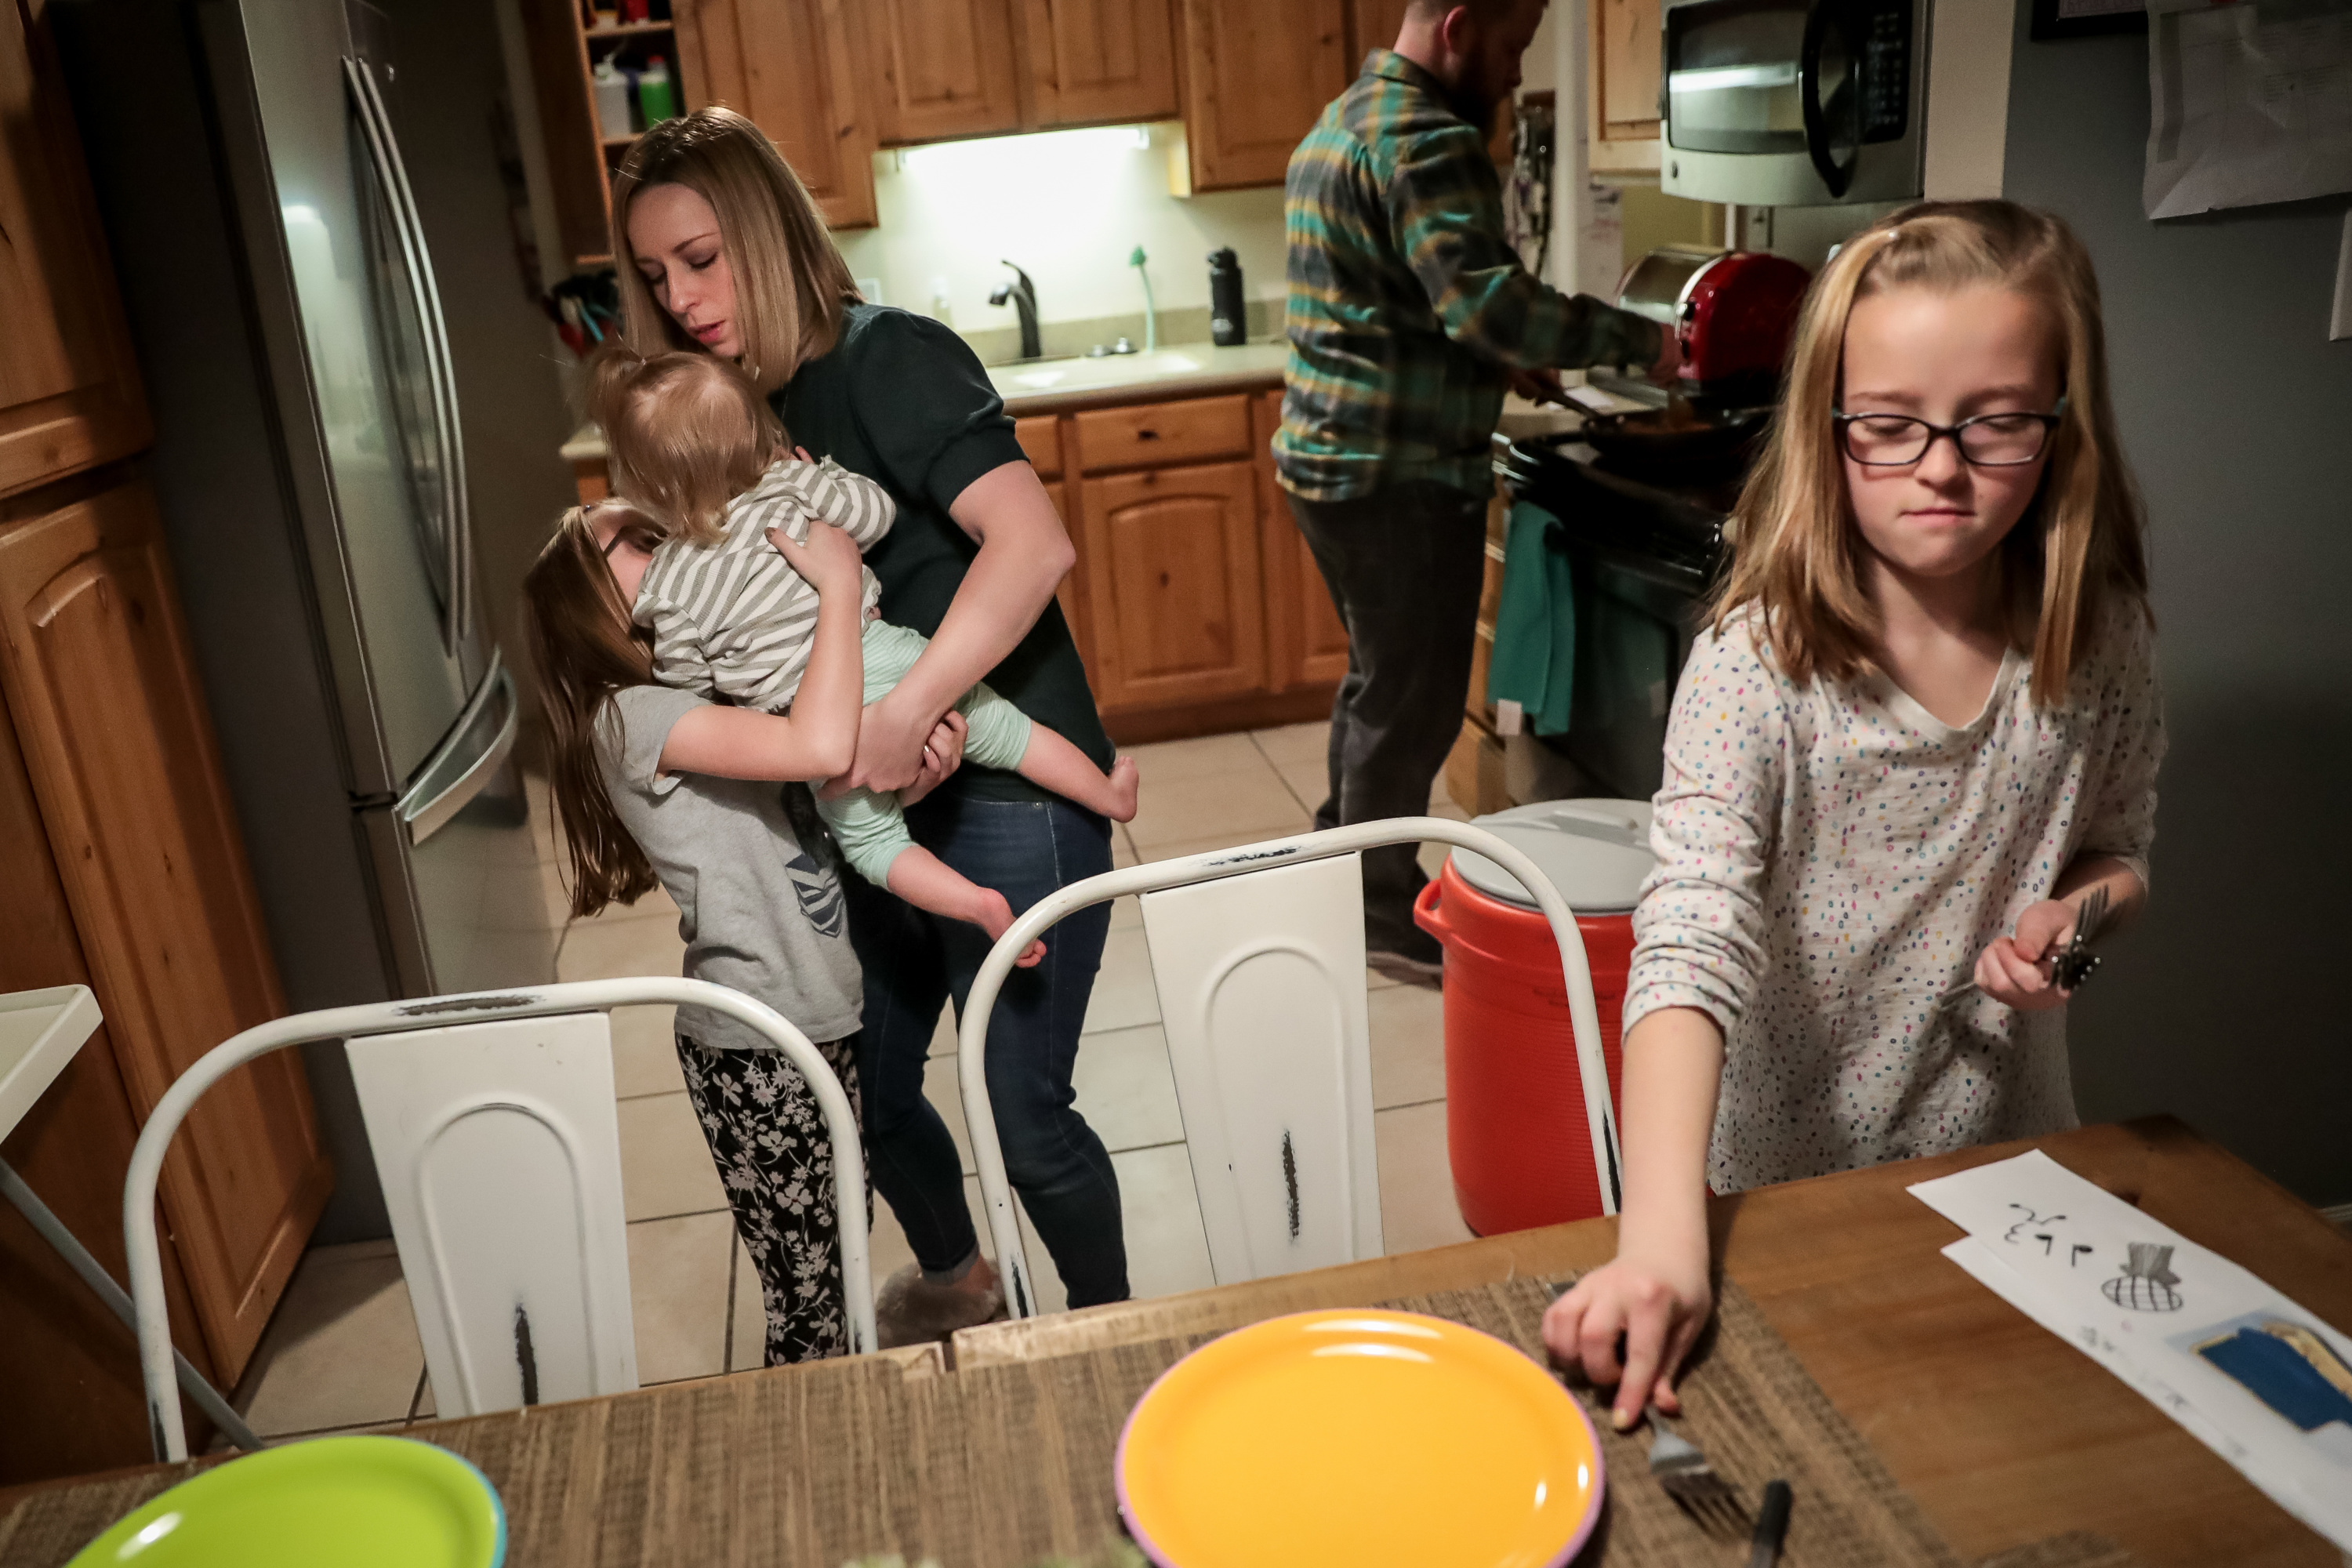 Cindy Maudsley passes Ivy, 11 months, to Phoebe, 8, while Lyla, 10, sets the table and AJ Maudsley, background, cooks dinner at their home in Bountiful on Tuesday, Jan. 7, 2020.